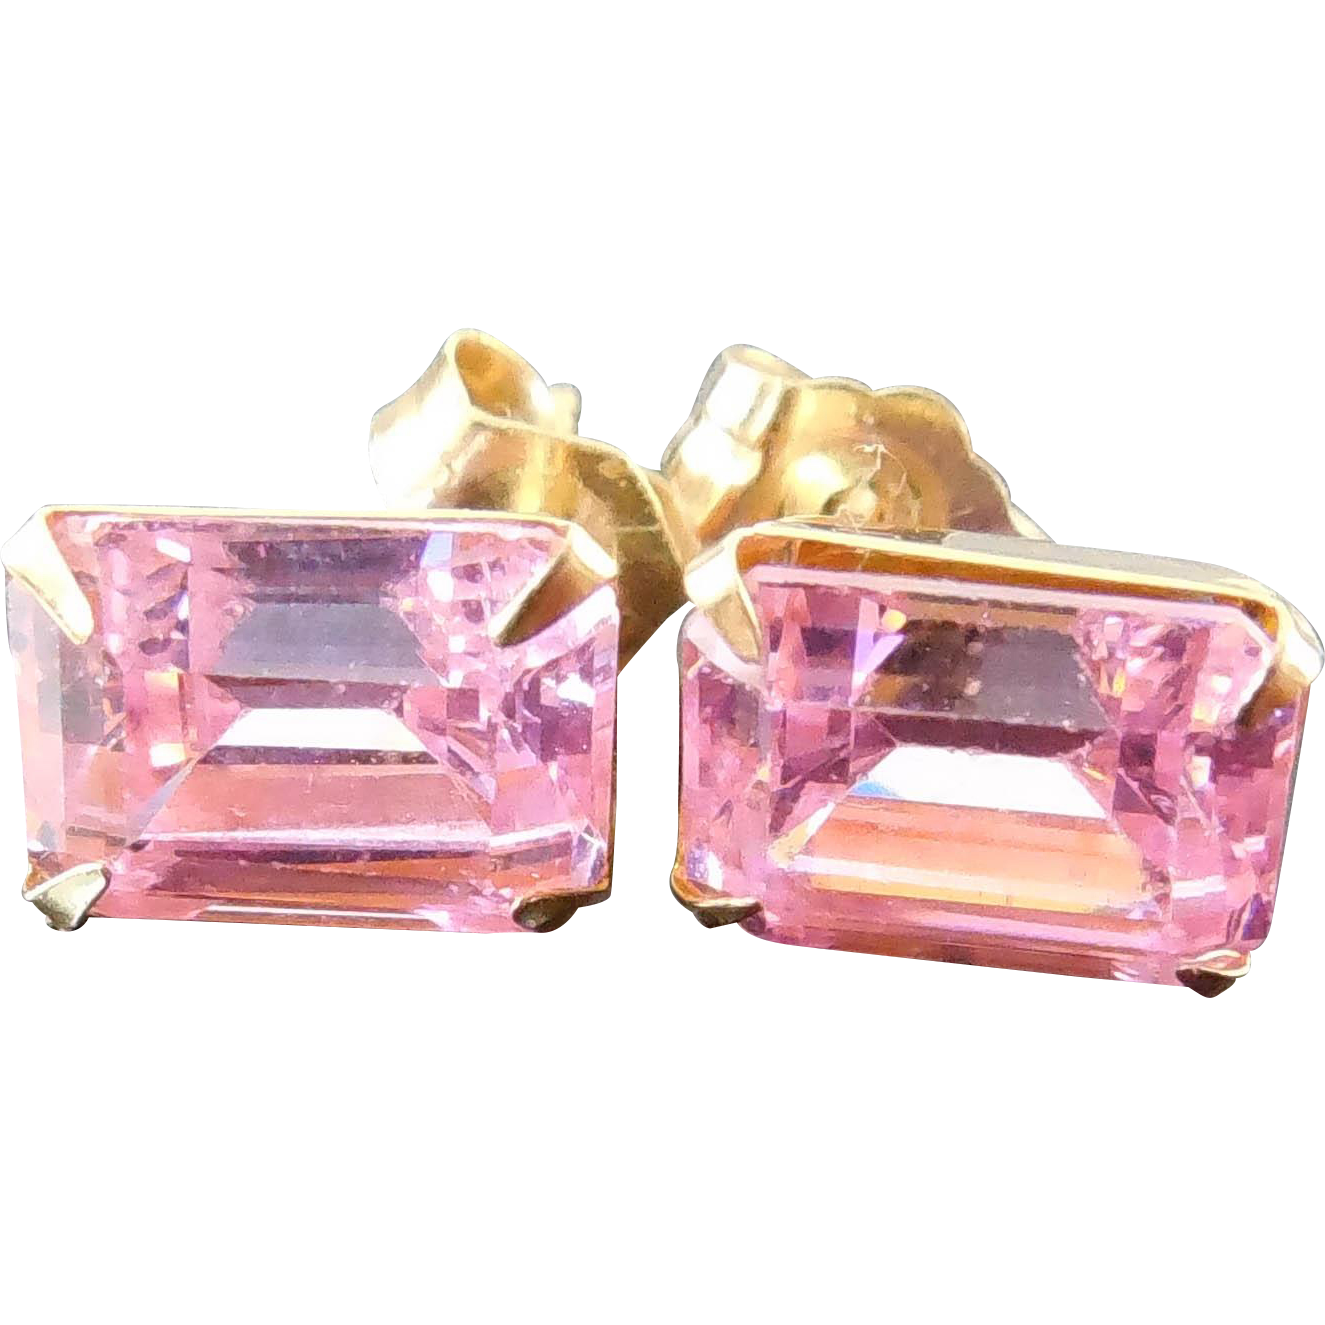 14K Gold Earrings With Pink Glass or Crystal Stones